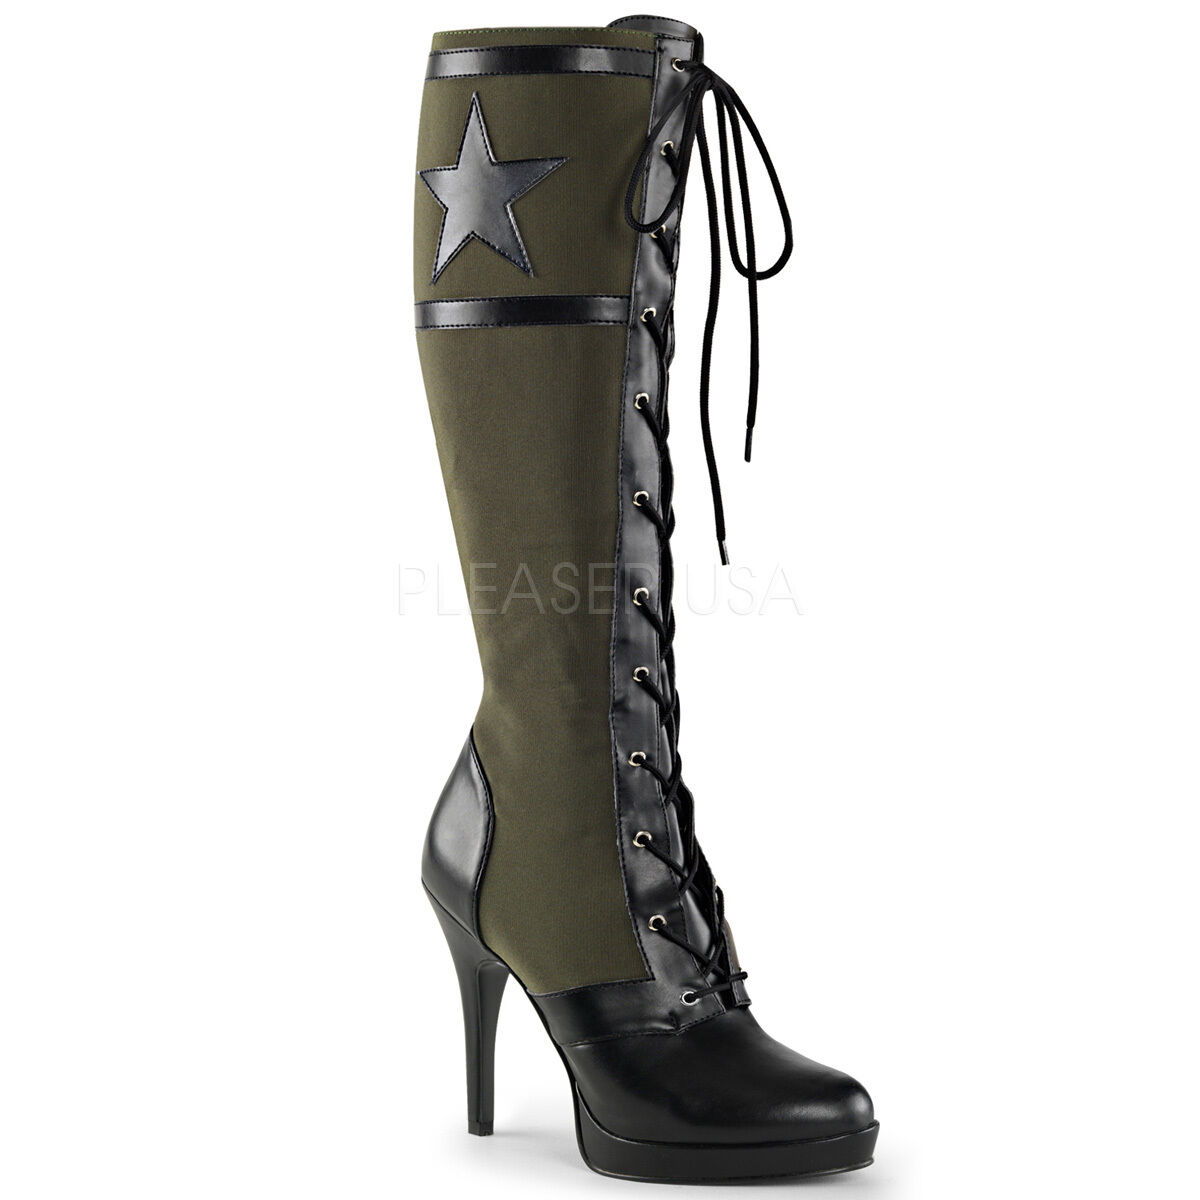 Sexy Soldier Army Military 4 1 2  Heel Women's Halloween Costume Knee Boots